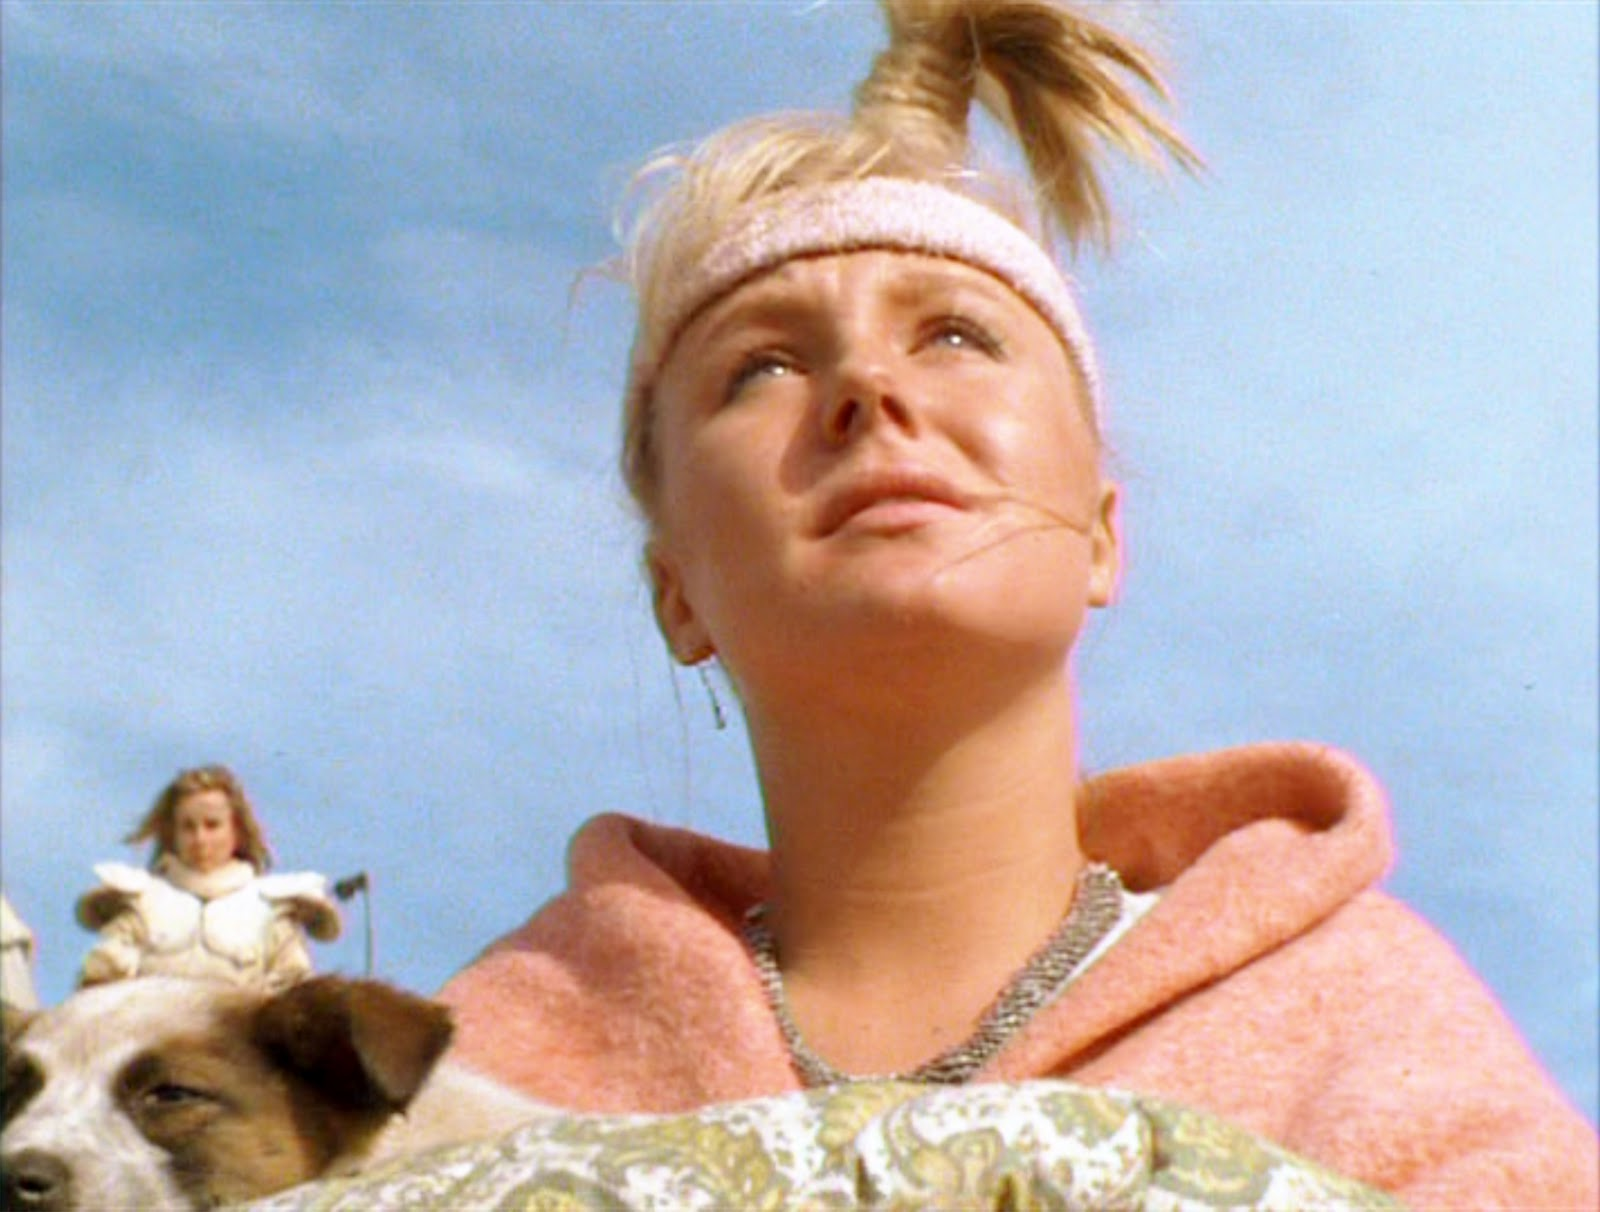 The Mad Maxathon, part two: The Road Warrior (1981) mostly â Mark Bould